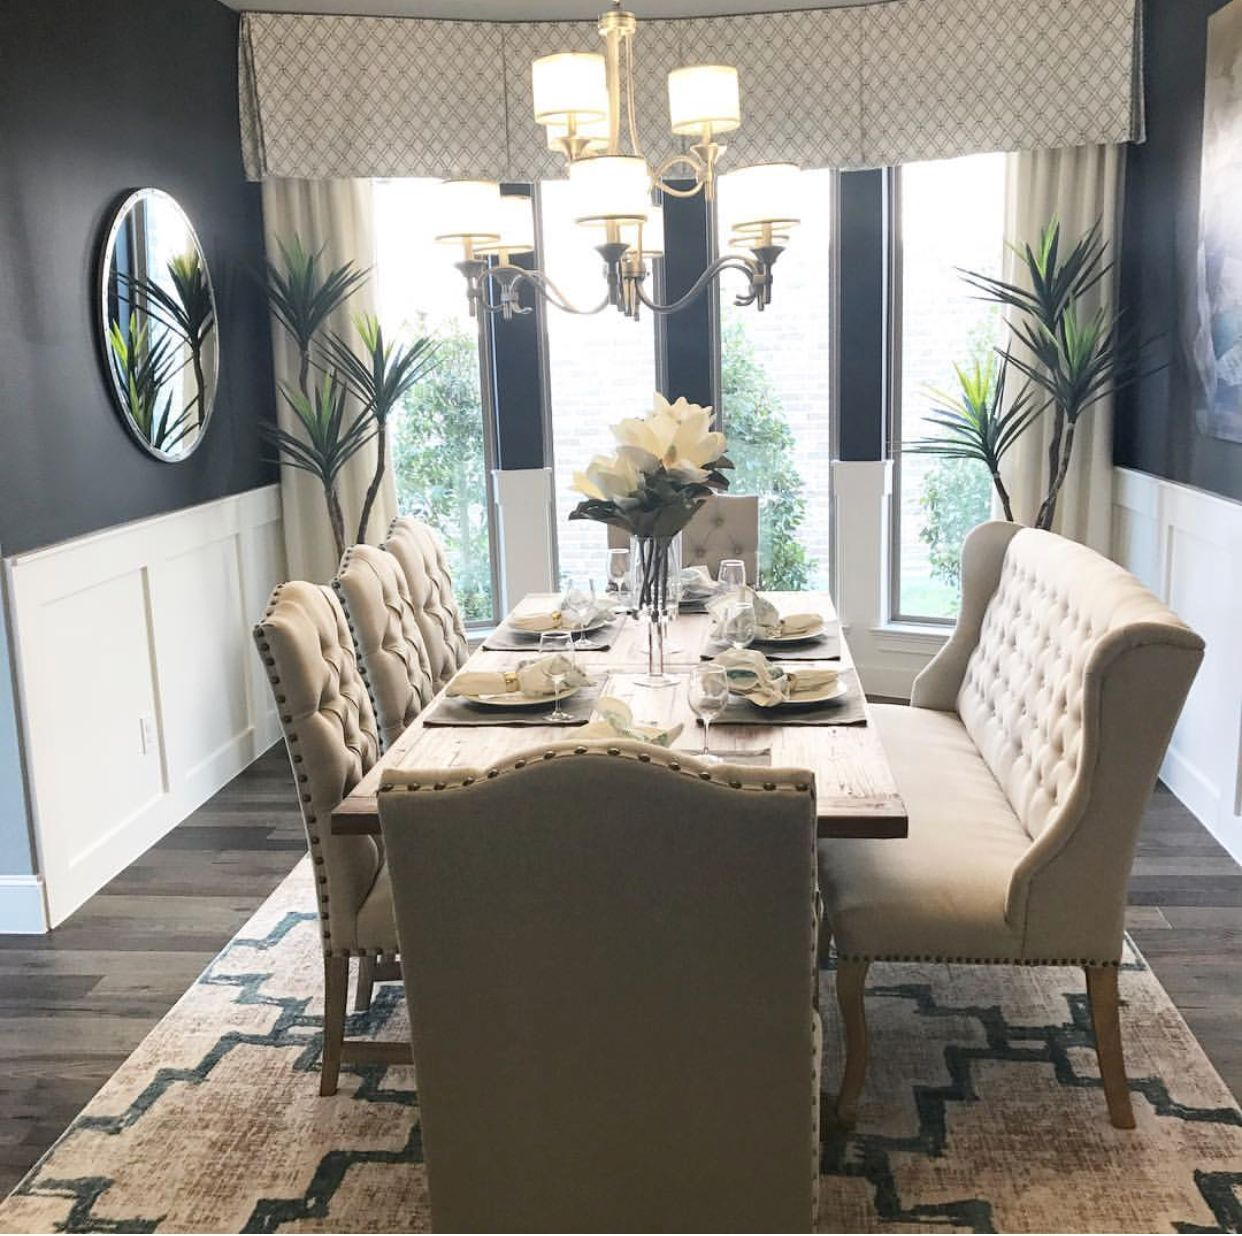 Elegant Tableware For Dining Rooms With Style: Elegant Dining Room, Dinning Room Decor